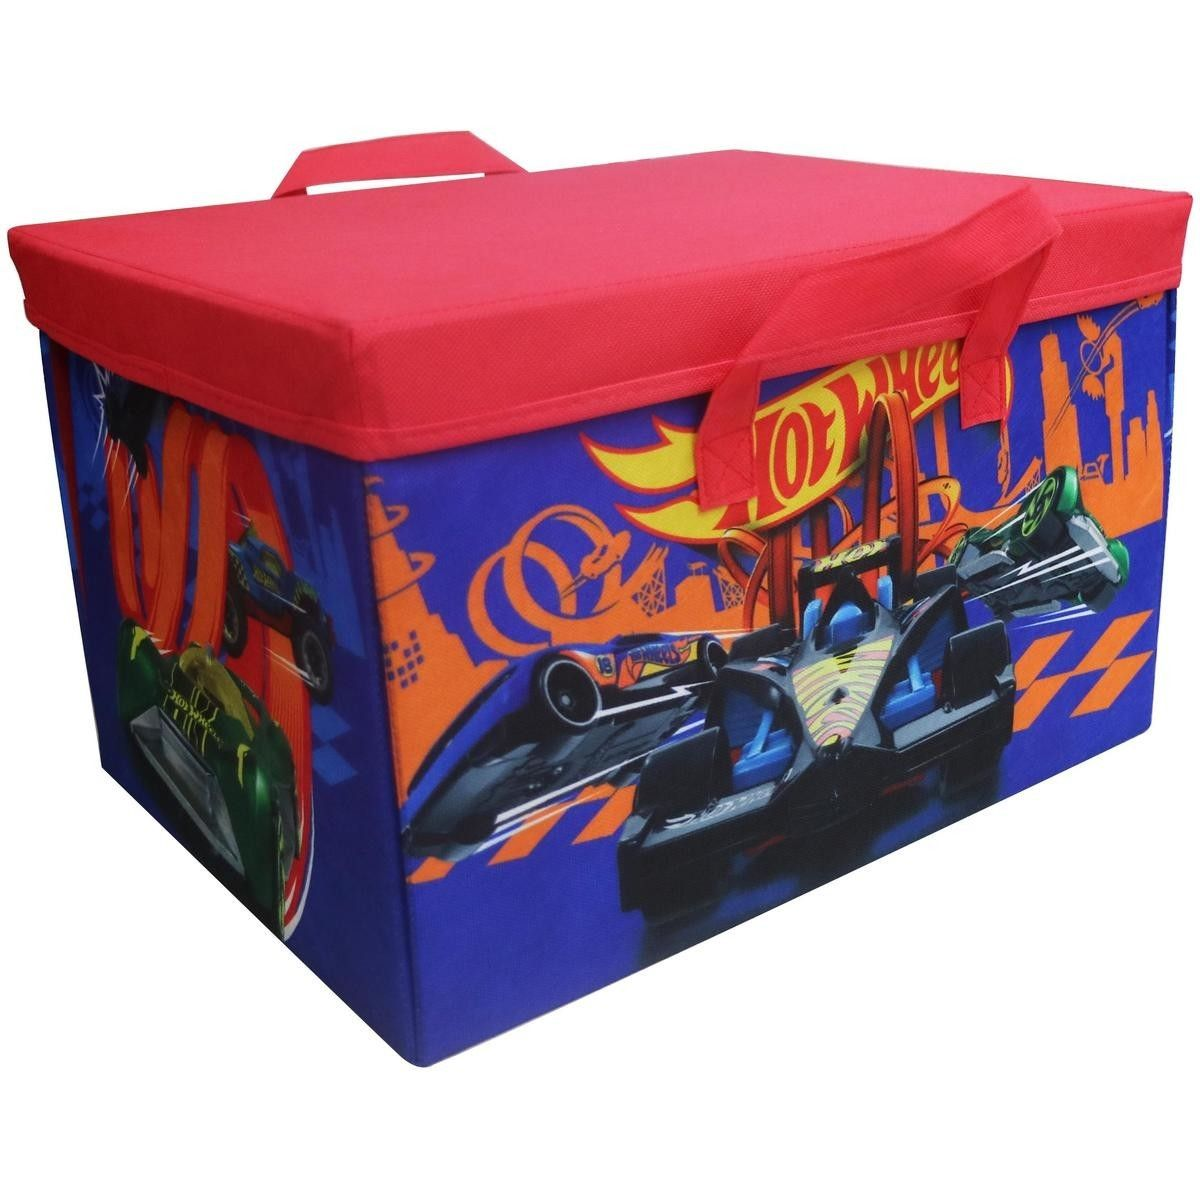 Hot Wheels Storage Box And Play Mat Big W Hot Wheels